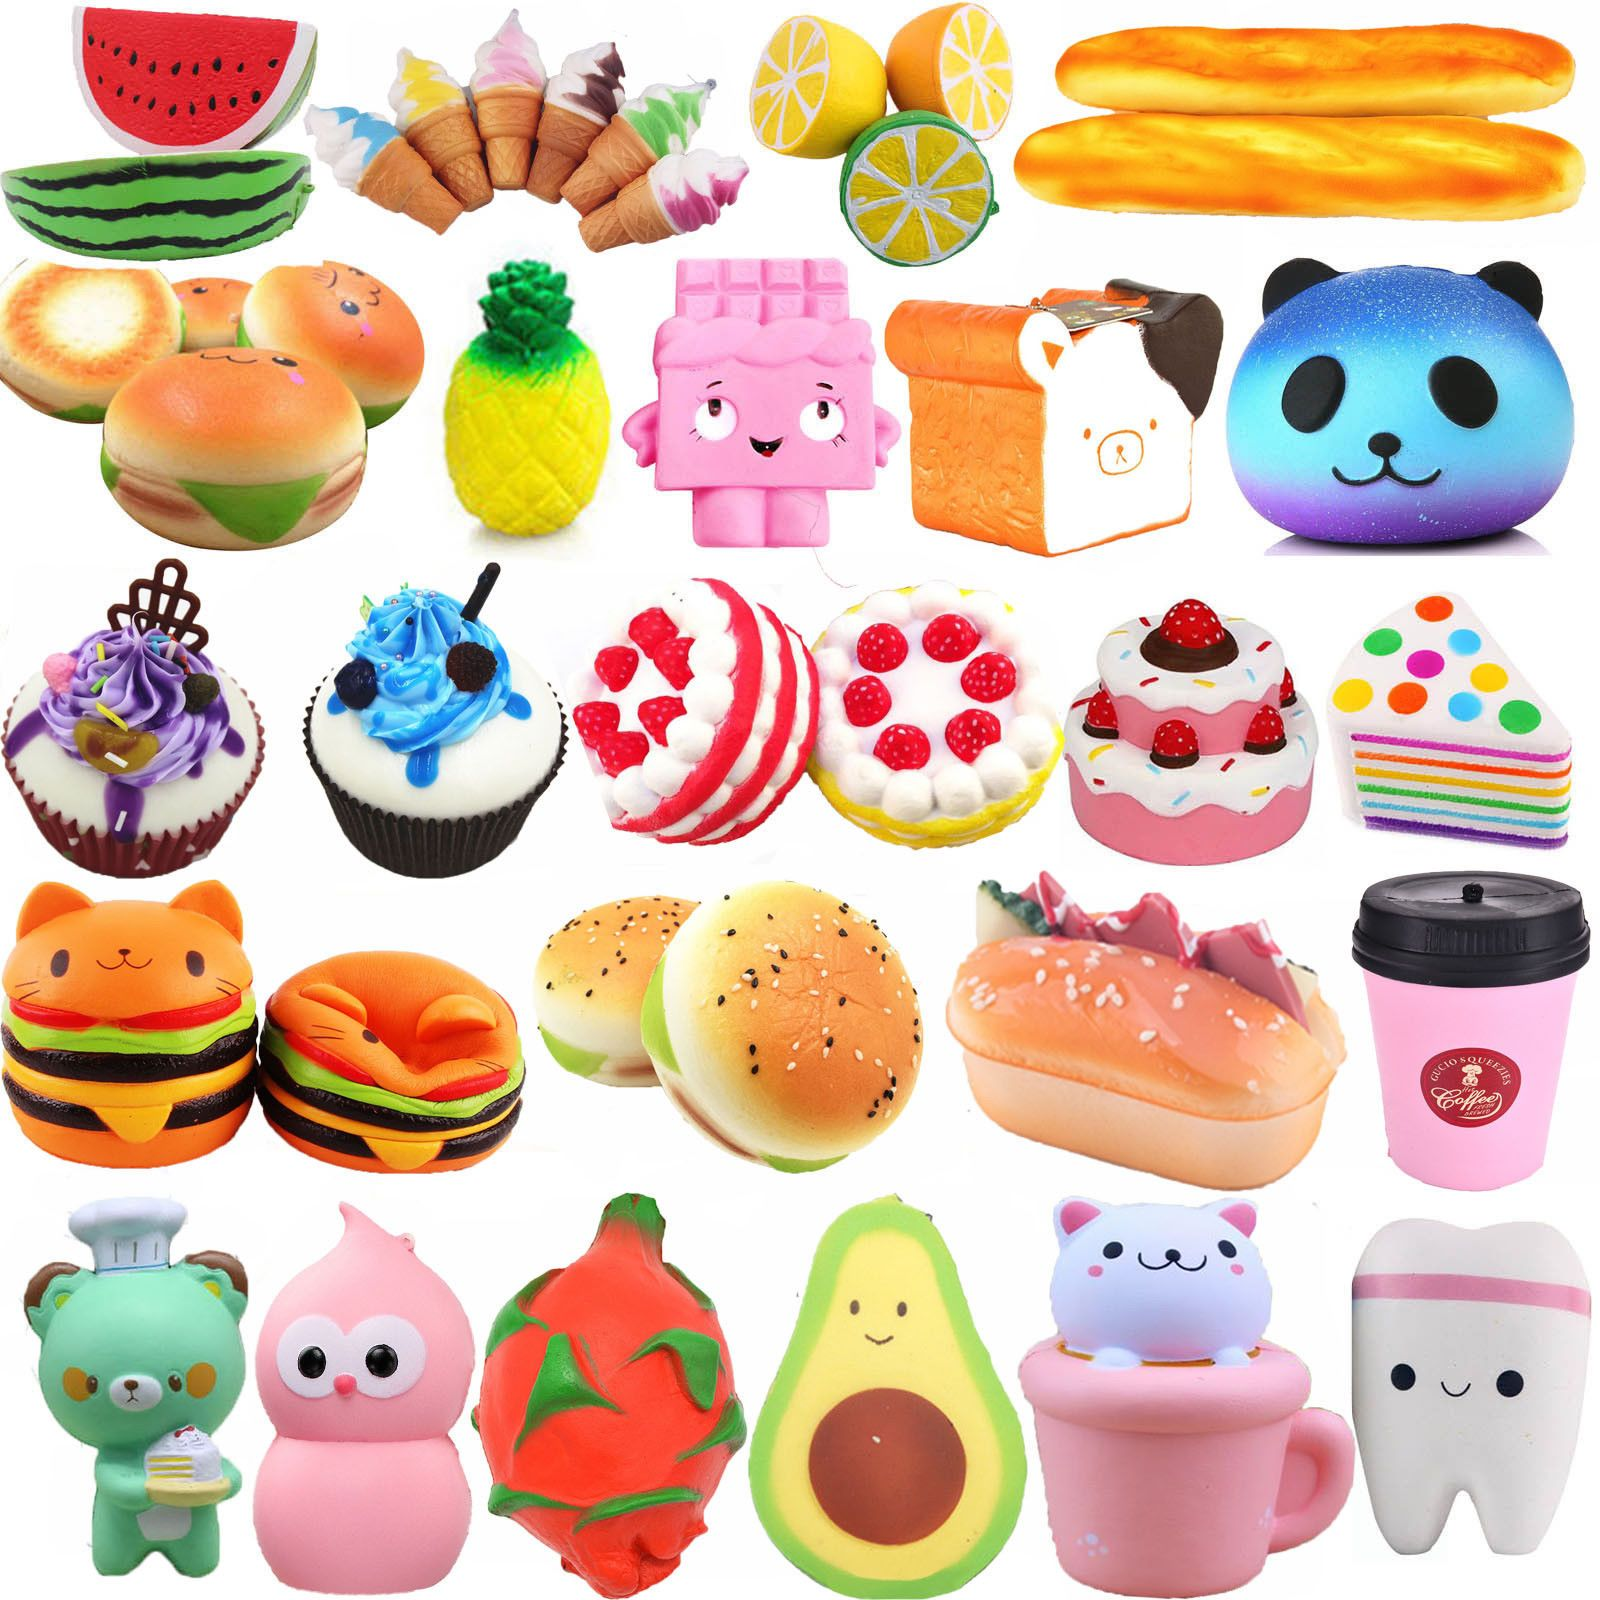 Kawaii Pizza Jumbo Squishying Slow Rising Toy Cute Cookie Squeeze Sweet Cake Bread Gift For Kids Fun Squishy-toy Phone Bag Charm Aromatic Flavor Cellphones & Telecommunications